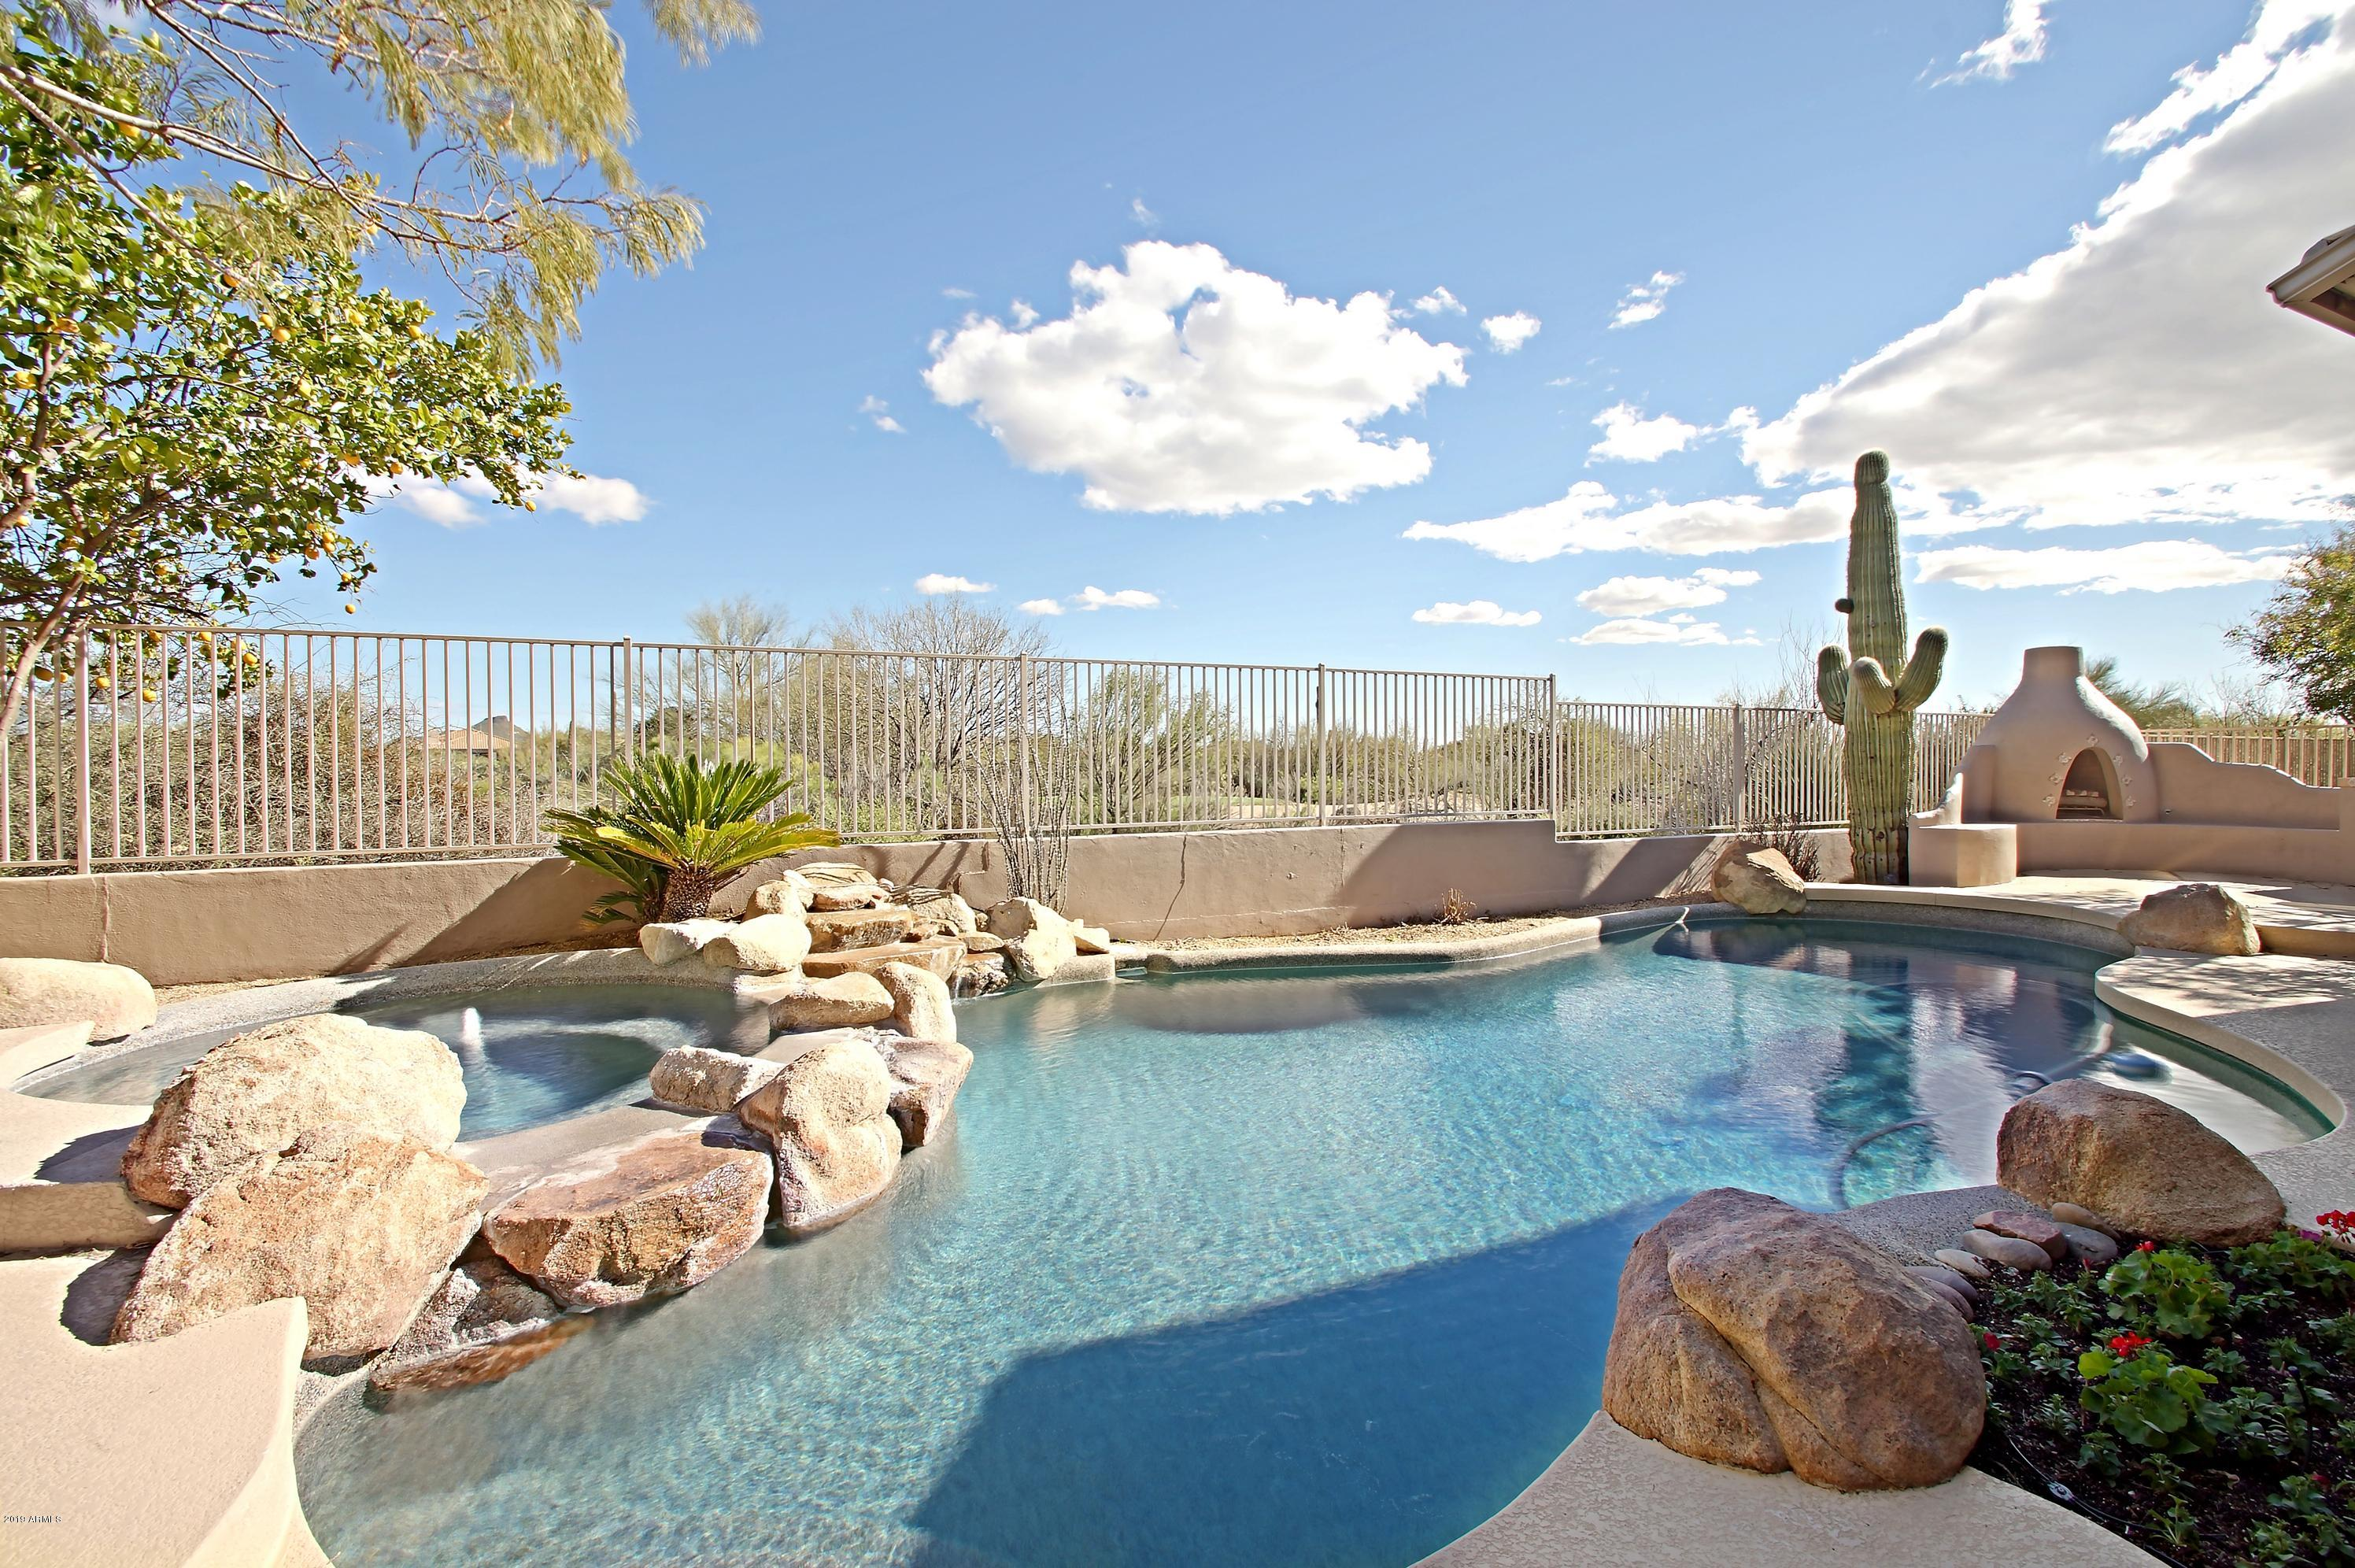 MLS 5899018 9315 E SANDY VISTA Drive, Scottsdale, AZ 85262 Scottsdale AZ Legend Trail